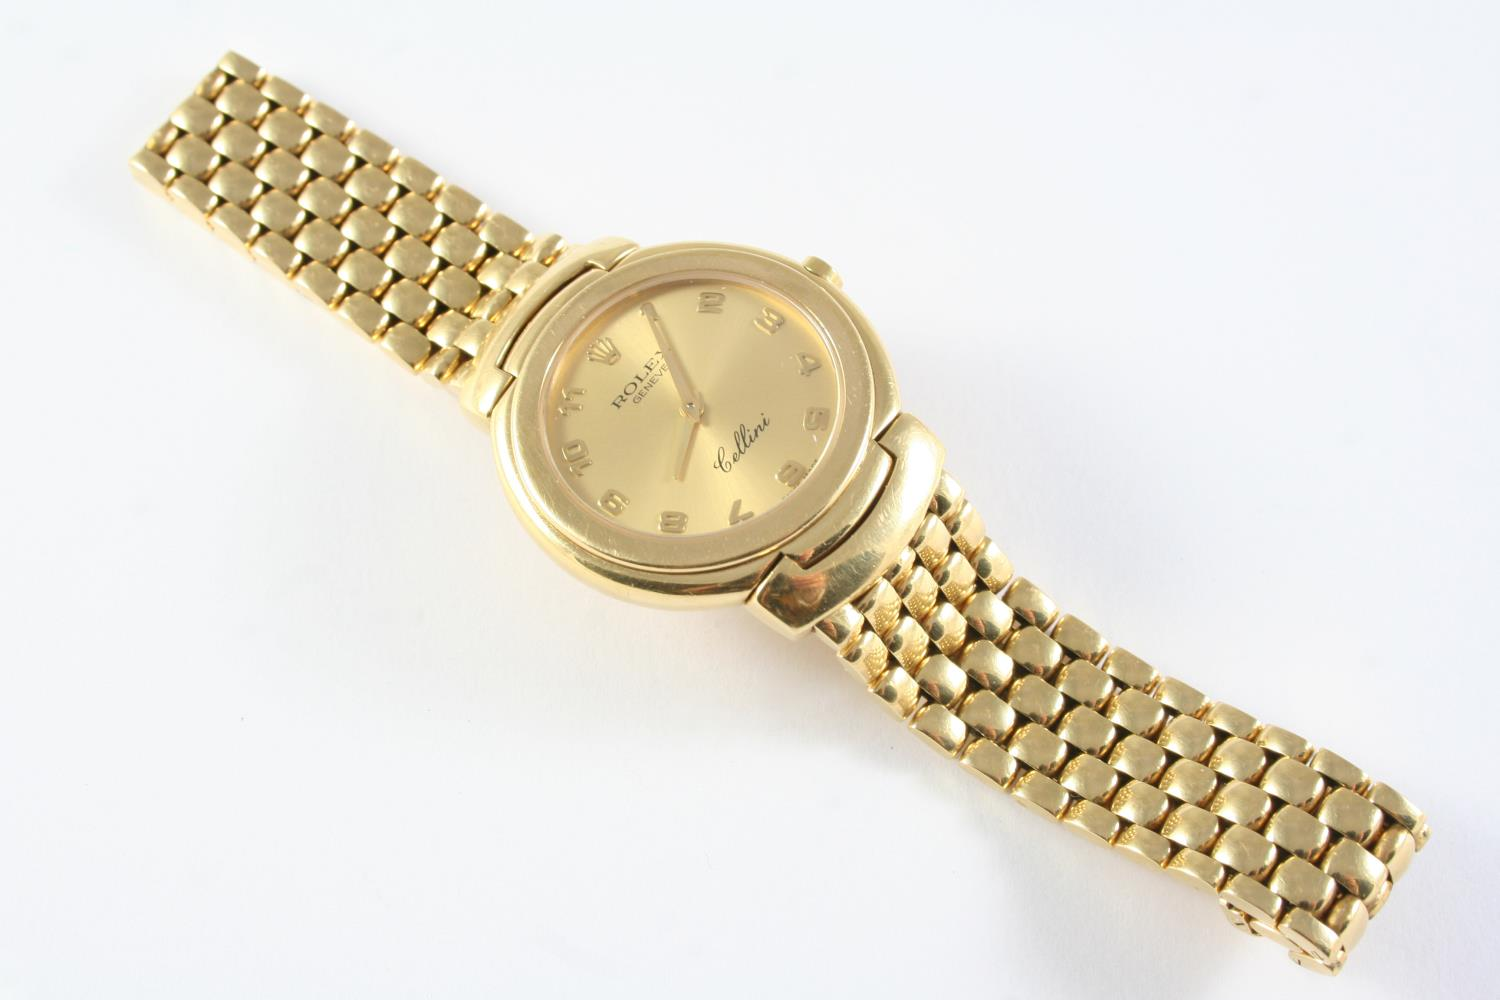 A GENTLEMAN'S 18CT GOLD WRISTWATCH BY CELLINI ROLEX the signed gold coloured dial with Arabic